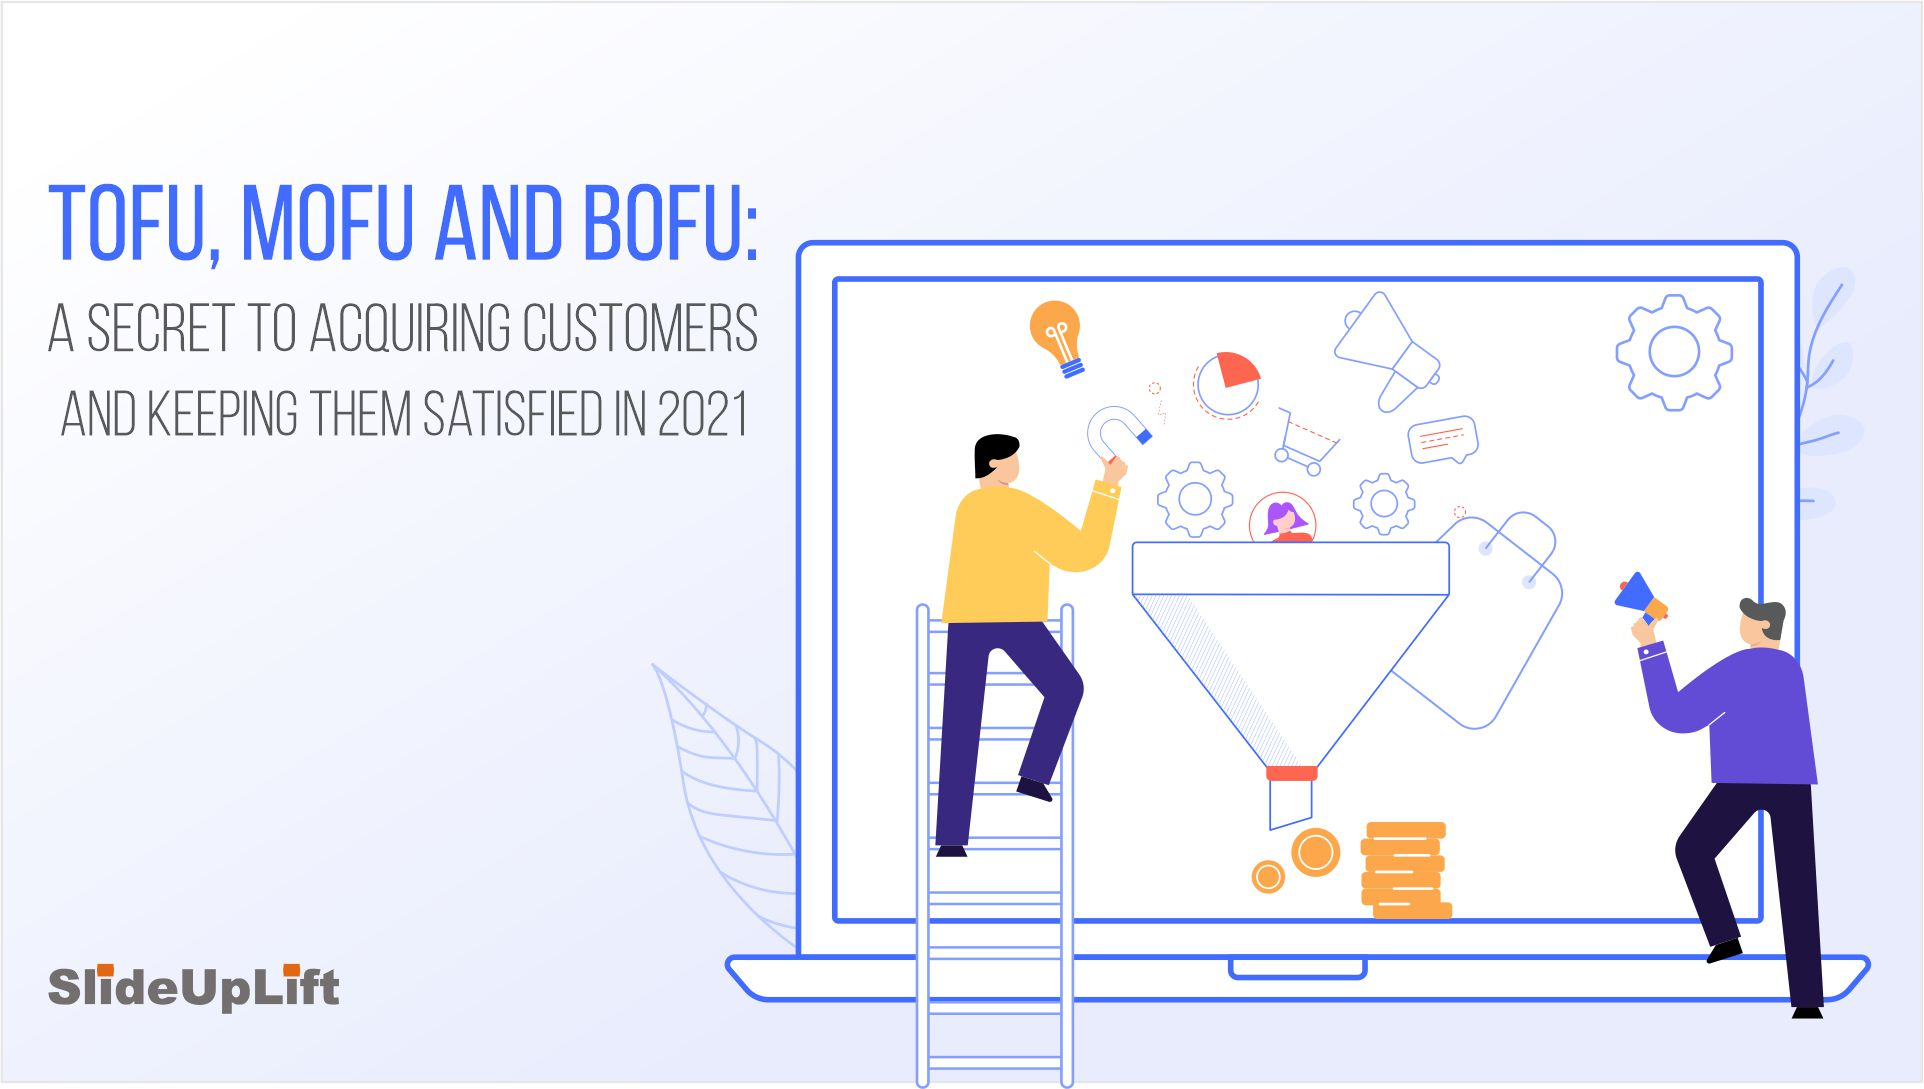 ToFu, MoFu and BoFu Sales Funnel: A Secret to Acquiring Customers and Keeping them Satisfied in 2021